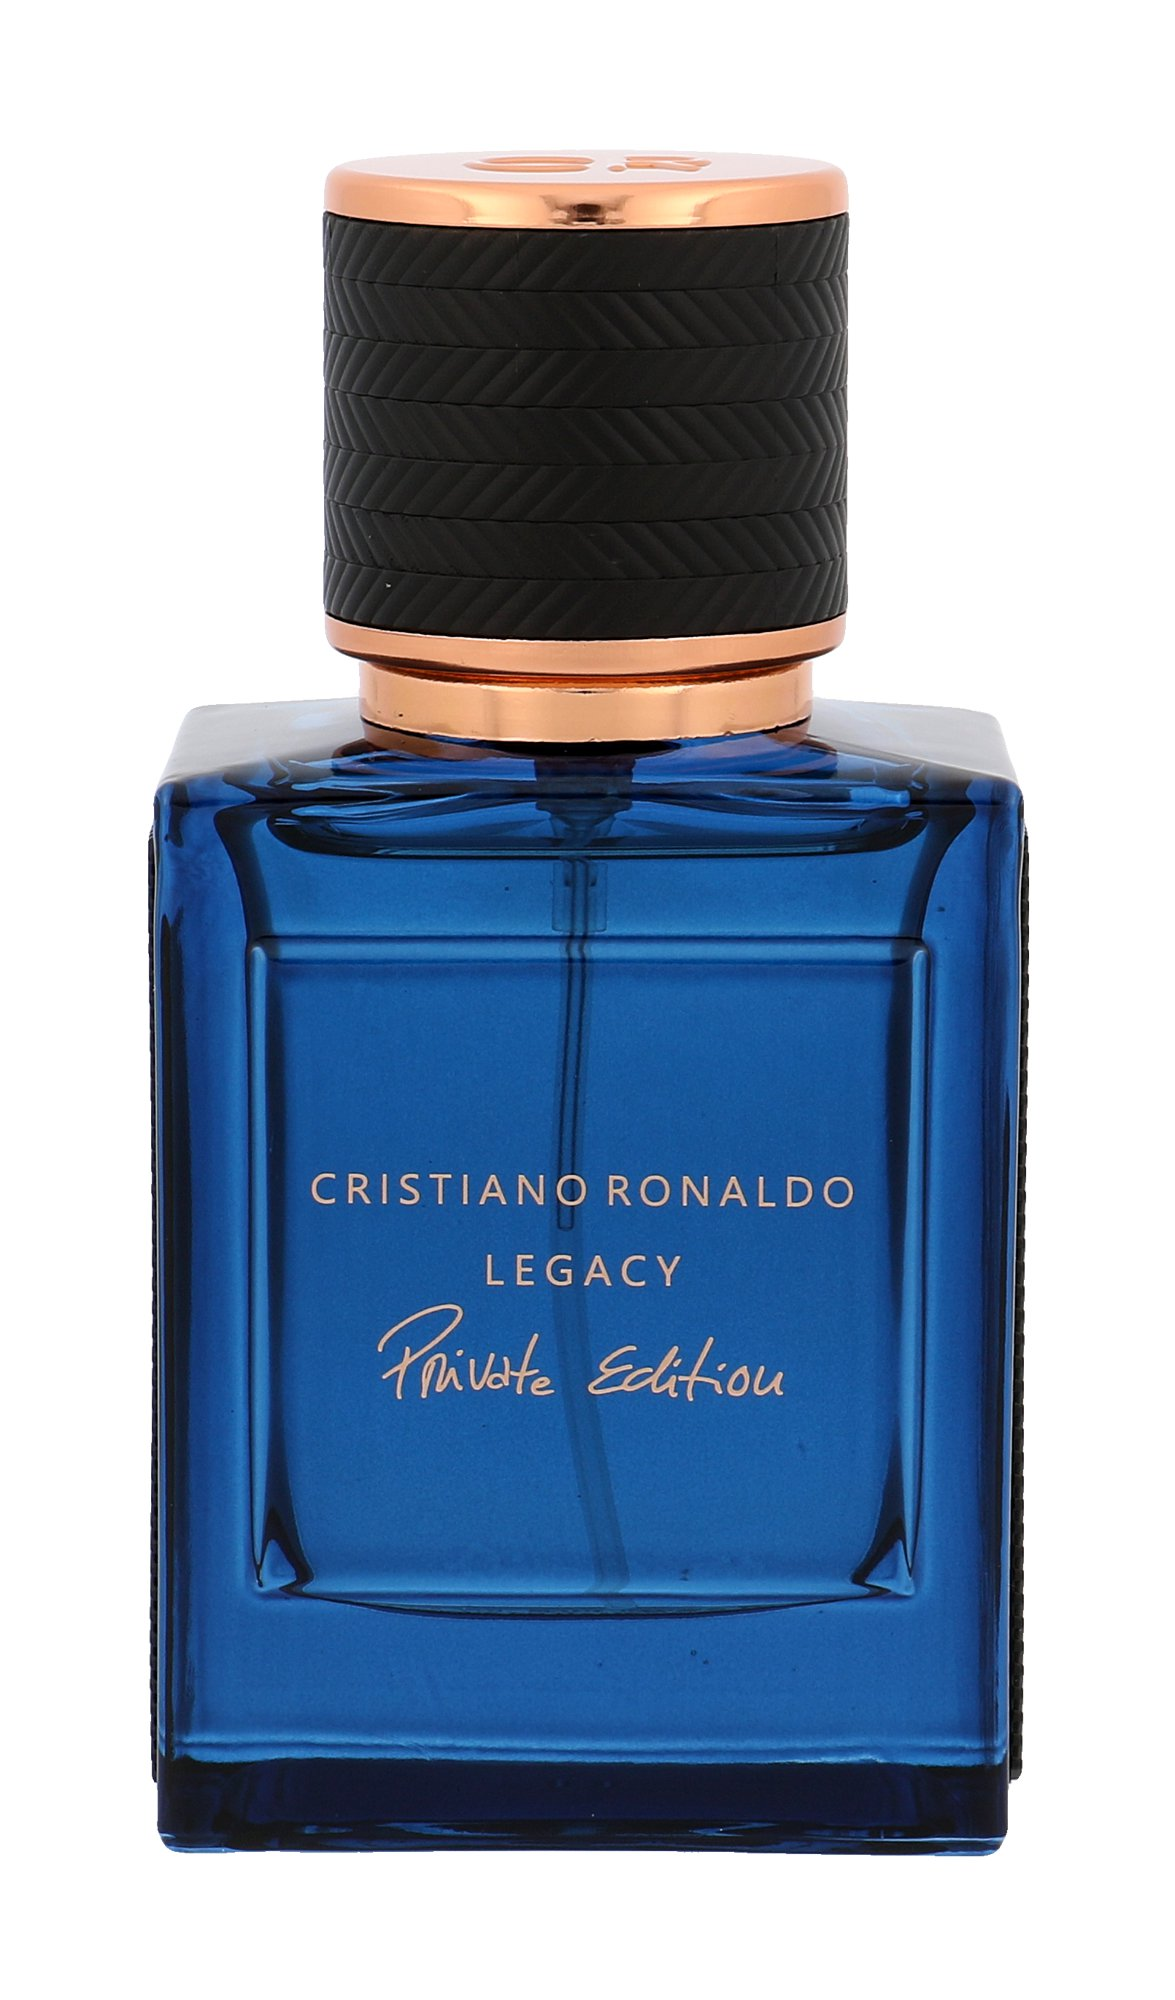 Cristiano Ronaldo Legacy Private Edition Eau De Parfum 30 ml (man) 90844